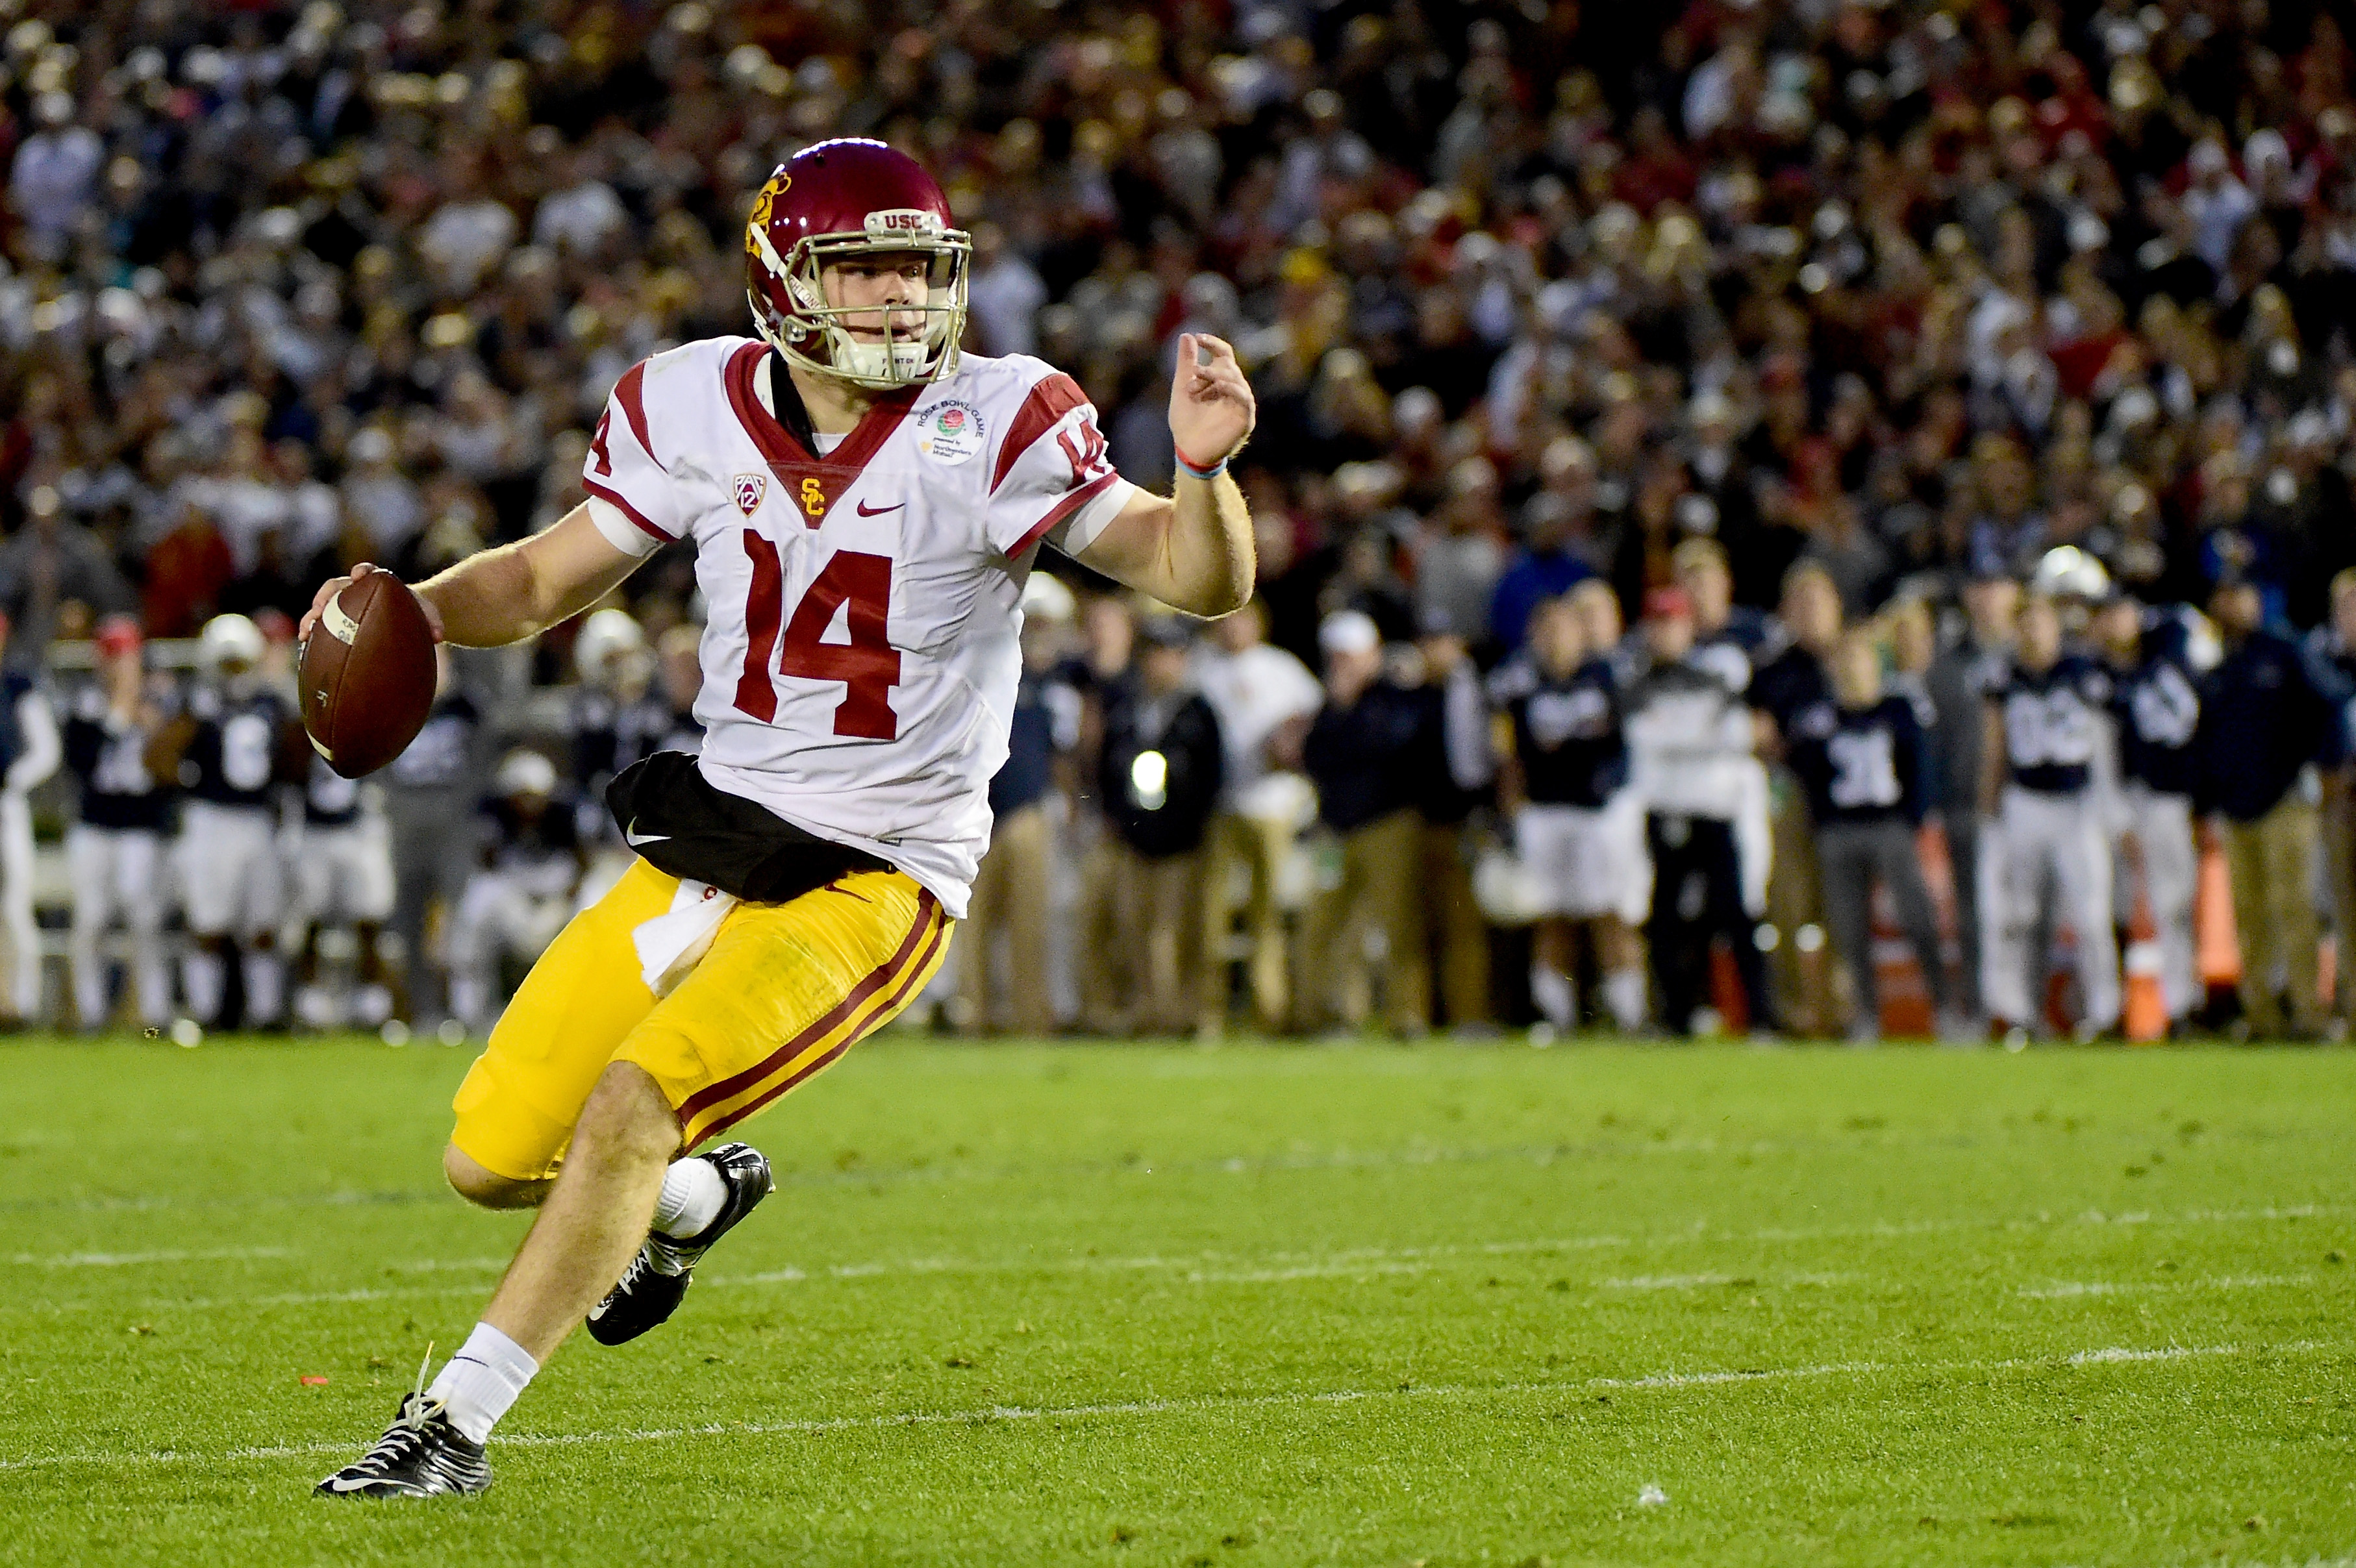 USC's Sam Darnold the favorite in latest Heisman odds  Who else is a